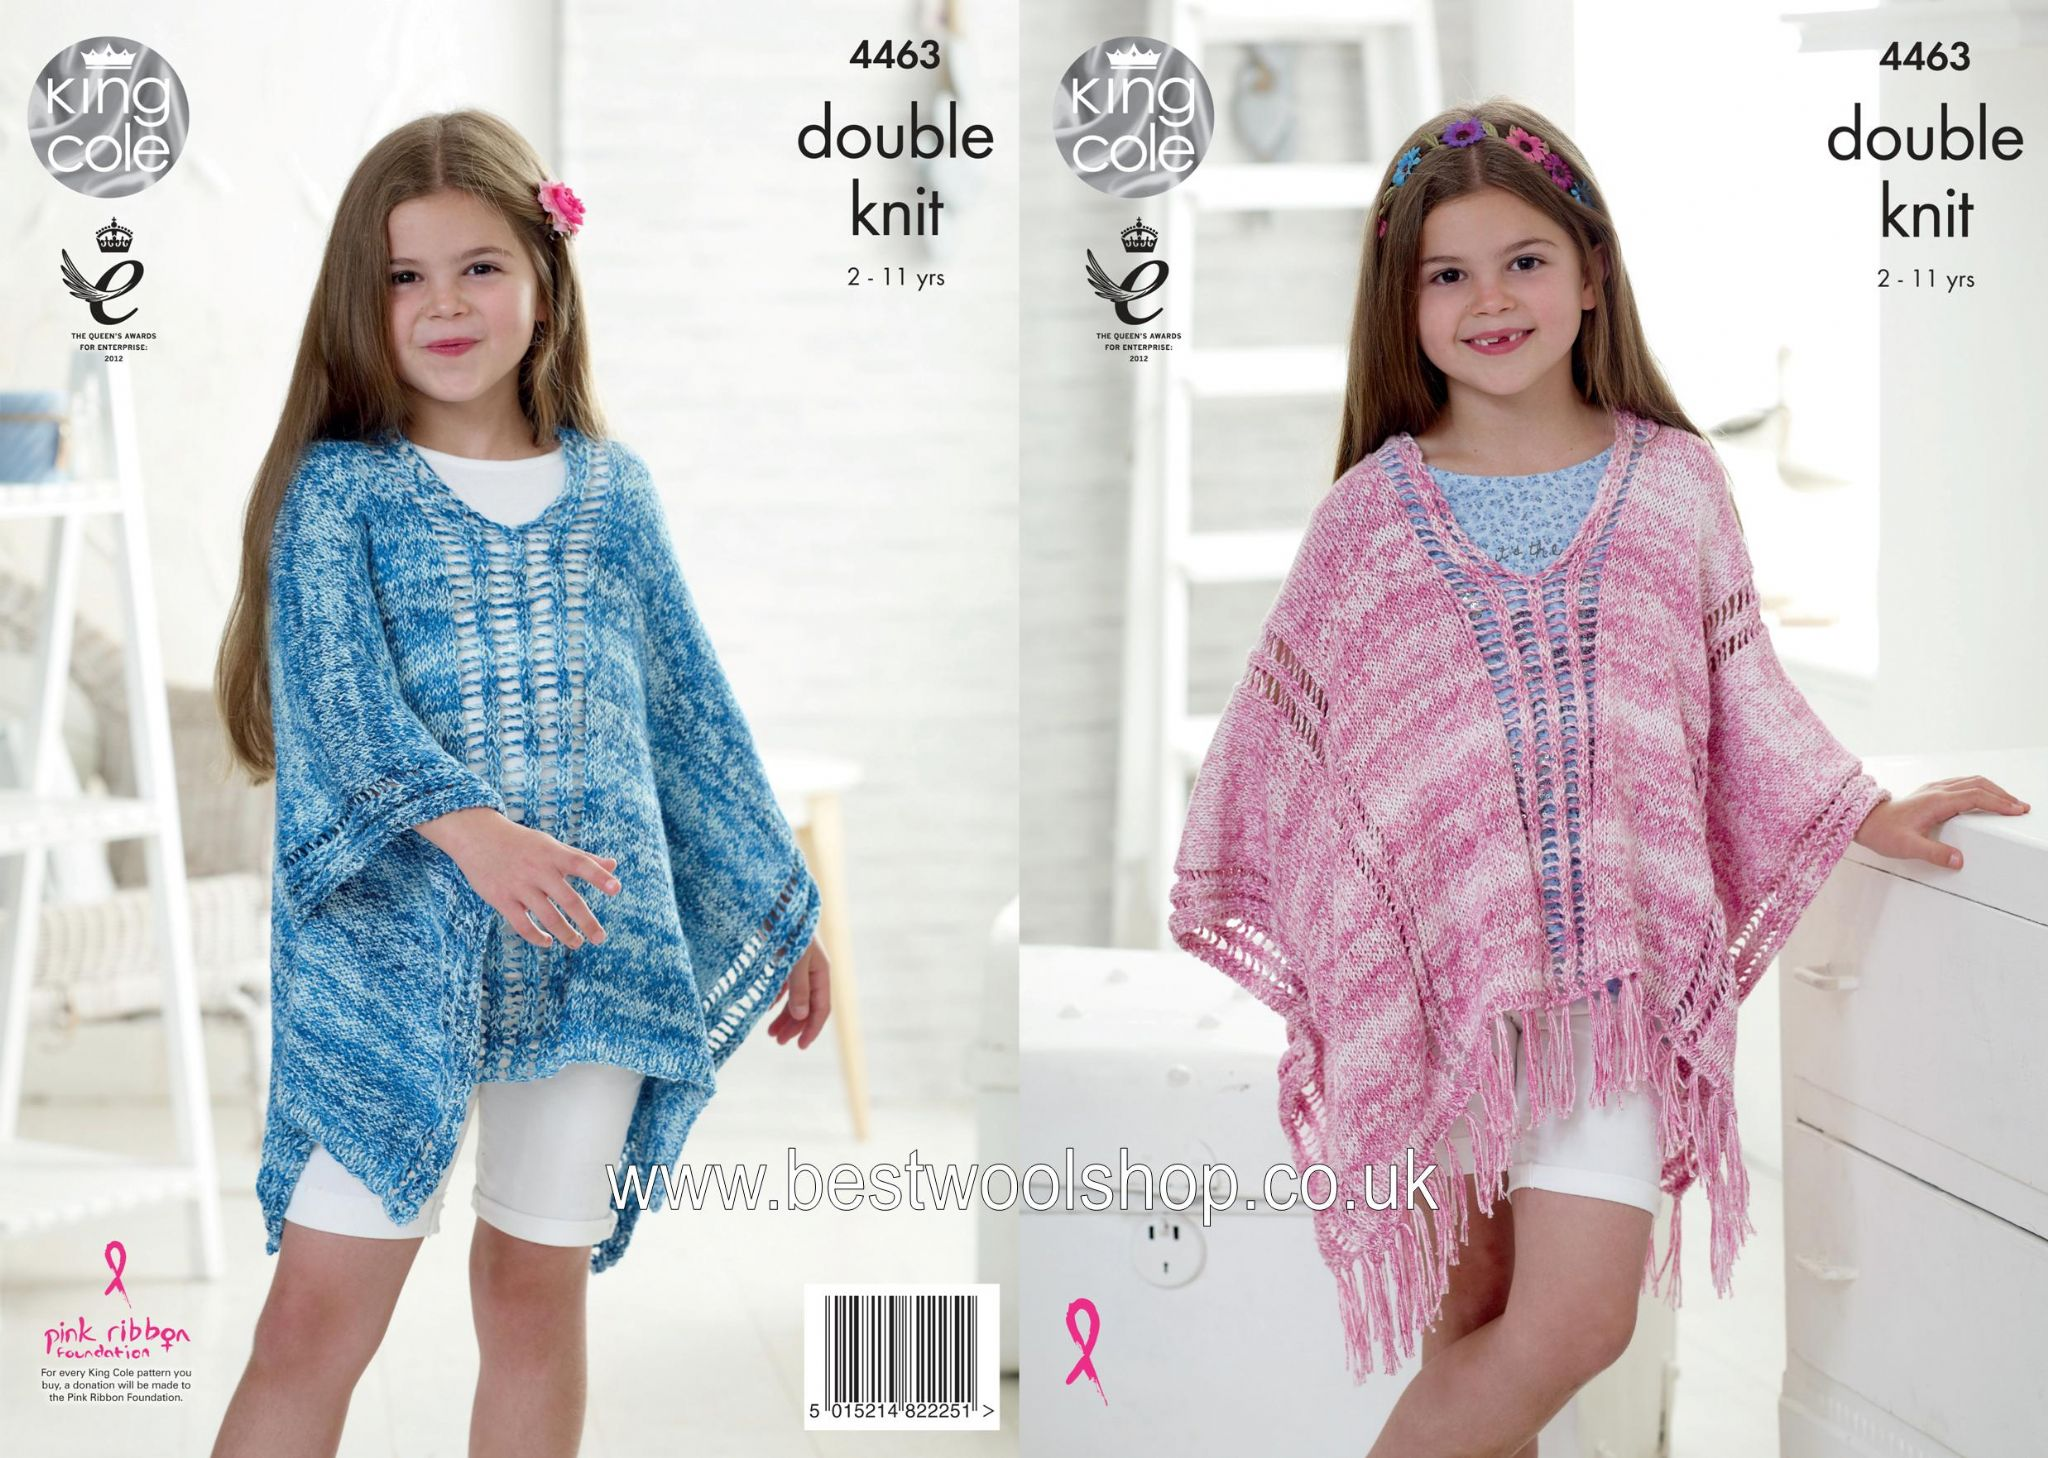 4463 king cole vogue dk girls poncho knitting pattern to fit 4463 king cole vogue dk girls poncho knitting pattern to fit age 2 to 11 years bankloansurffo Gallery